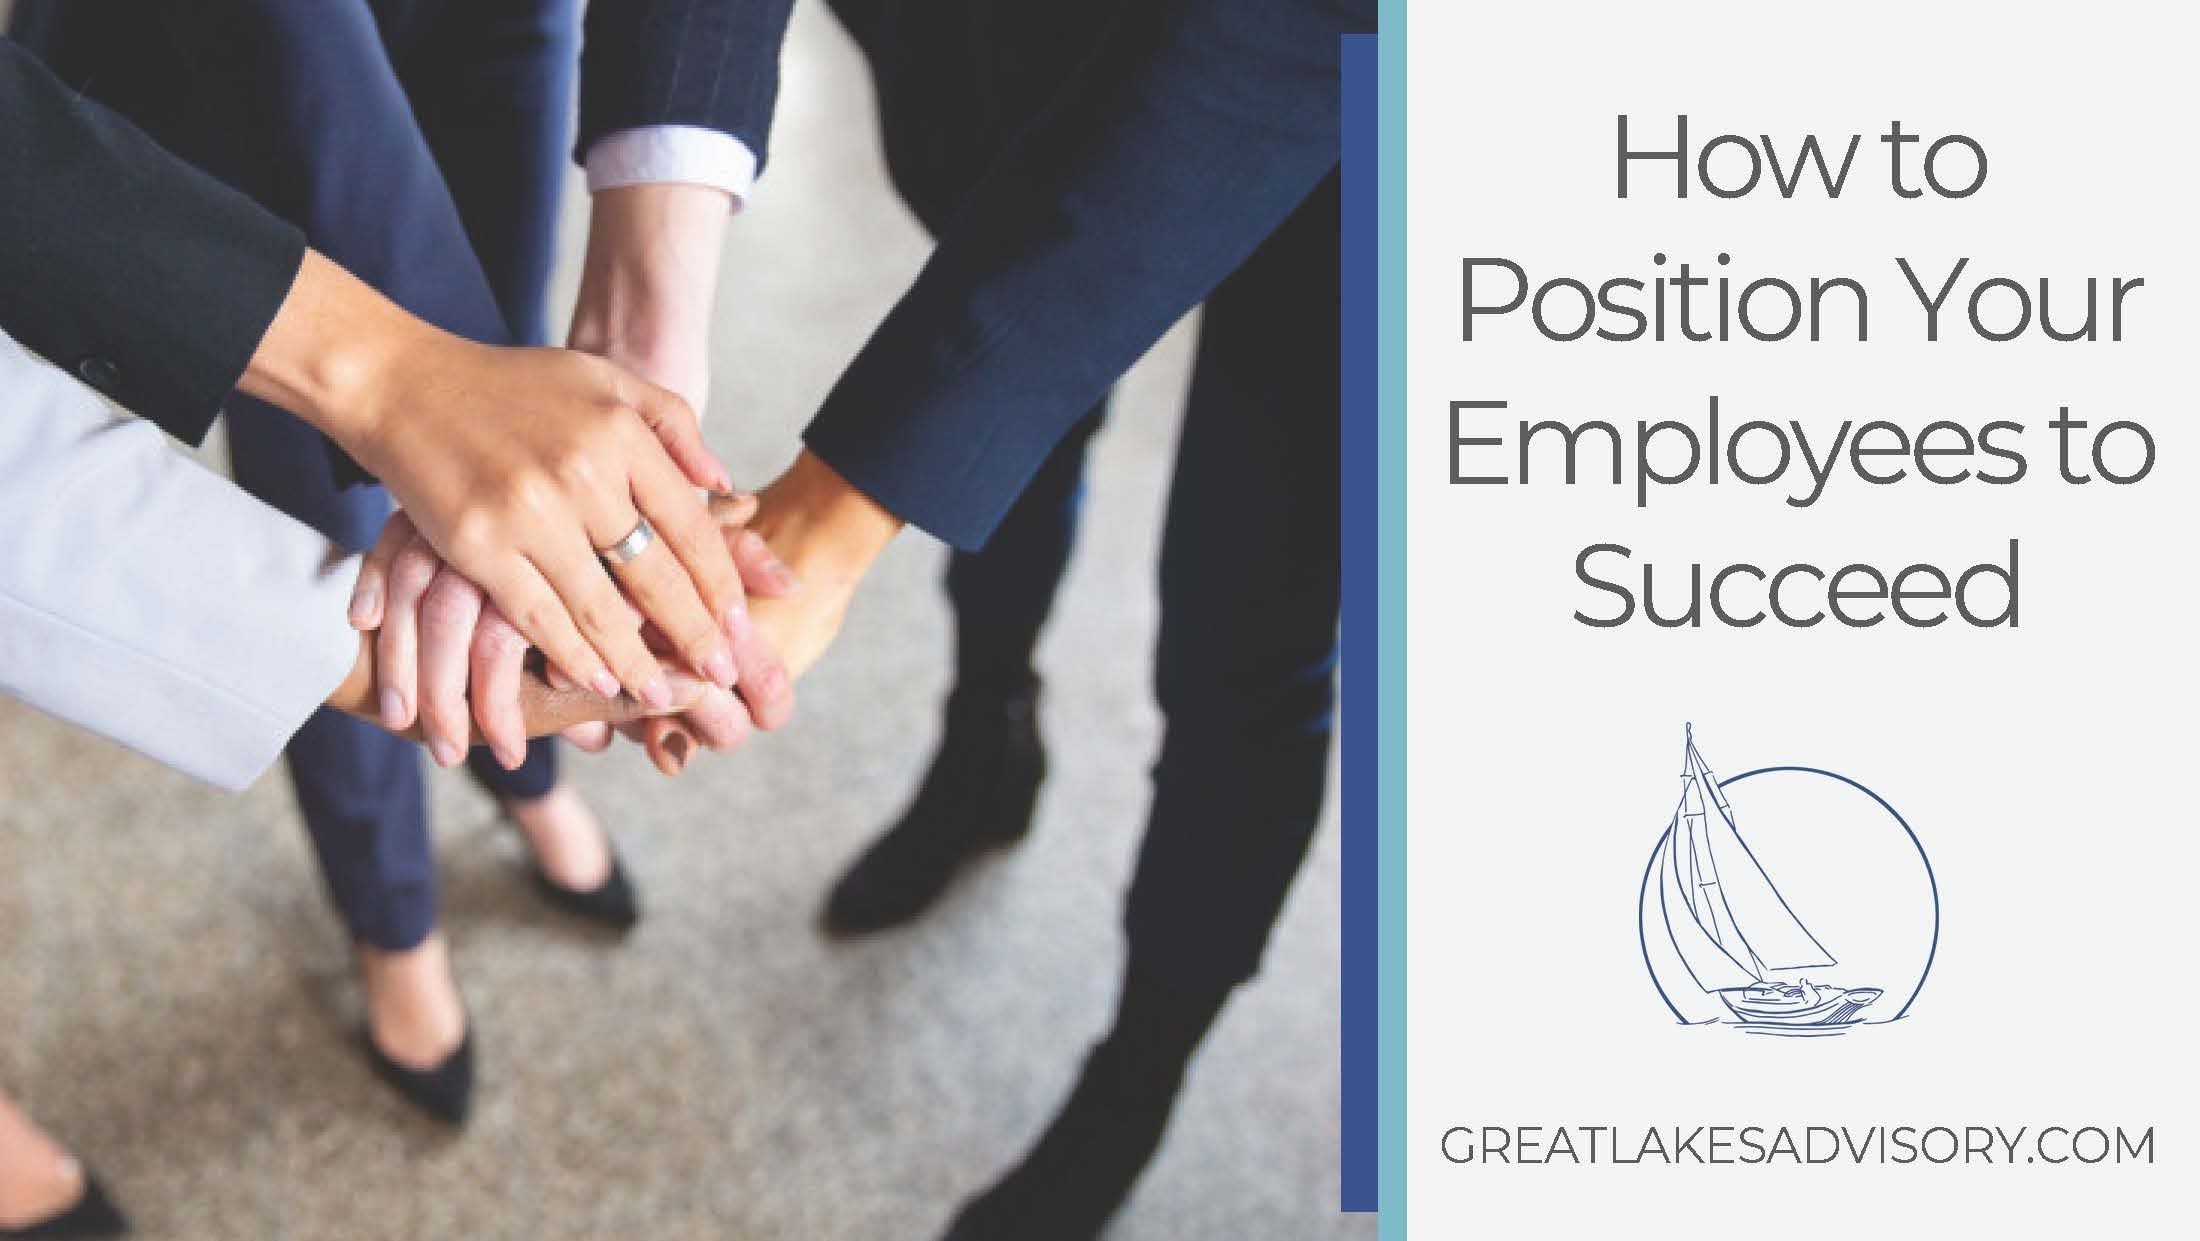 How To Position Your Employees To Succeed